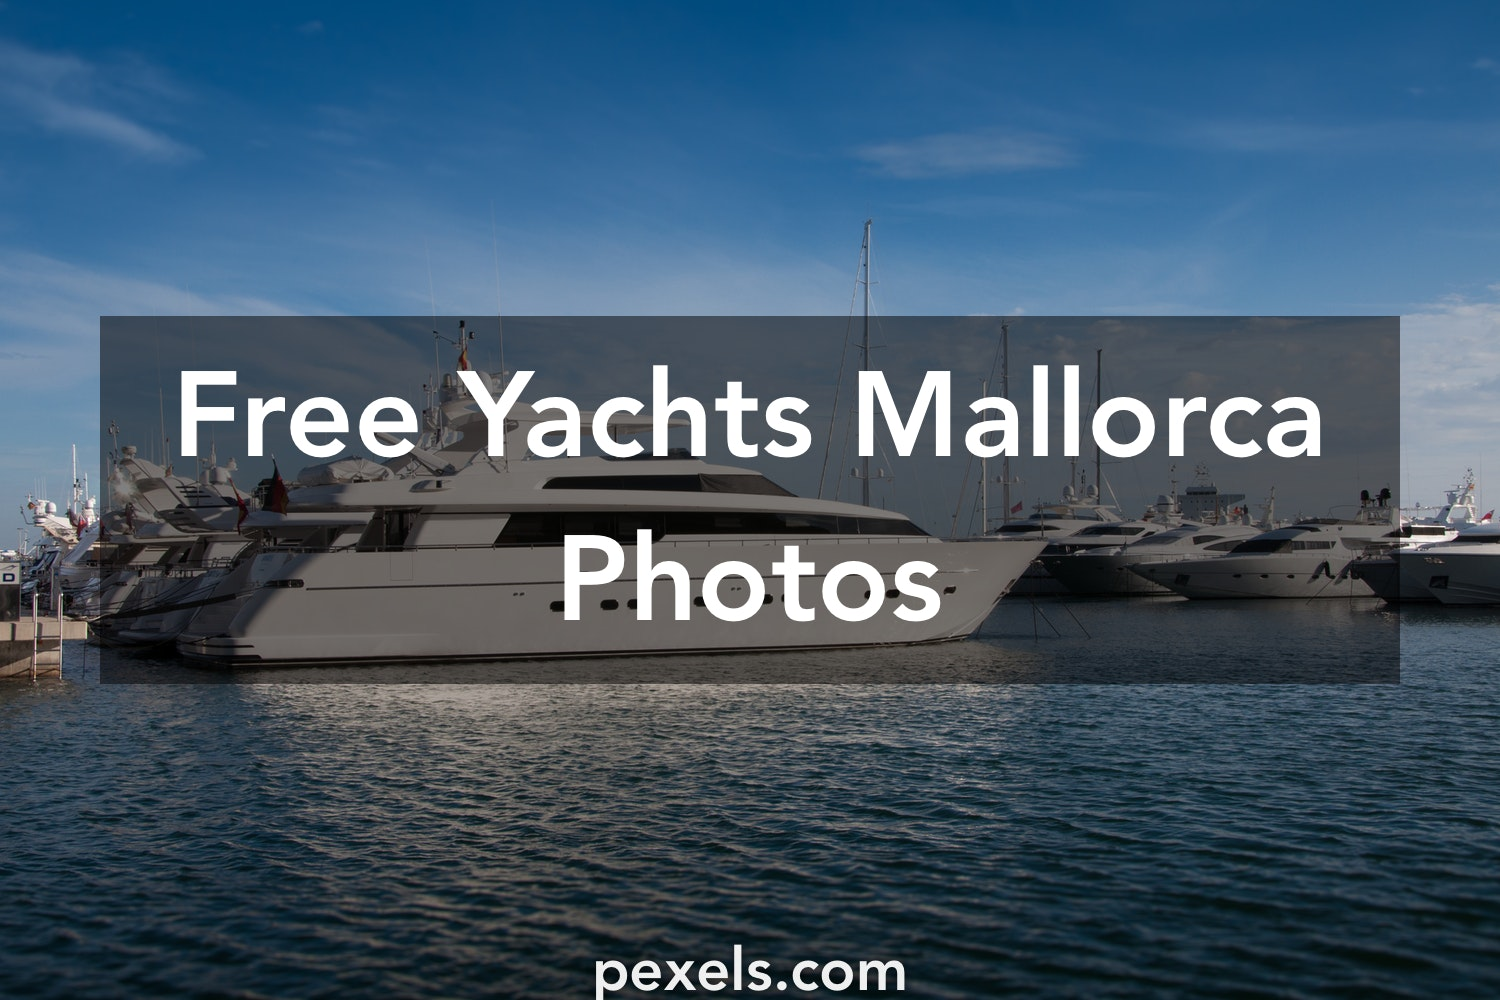 200 great yachts mallorca photos pexels free stock photos